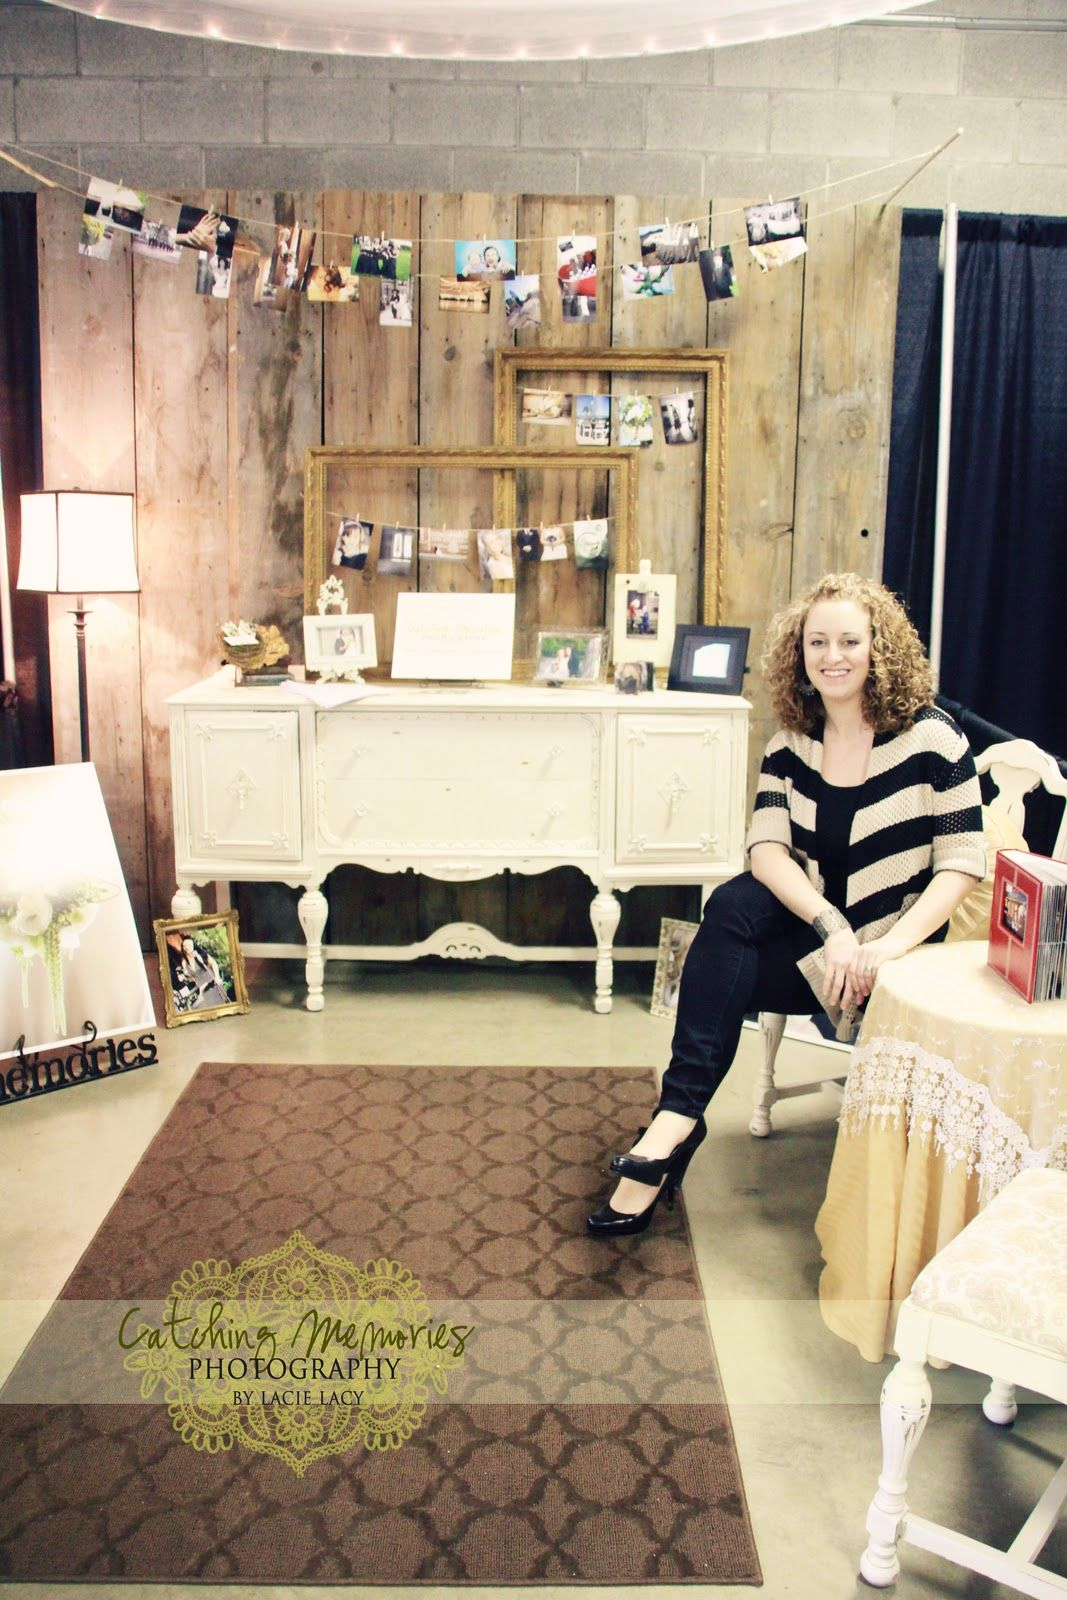 Bridal Show Booth Concept Like The Frames With Wires Love The Vintage Rustic Feel To It Wedding Show Booth Bridal Fair Bridal Show Booths